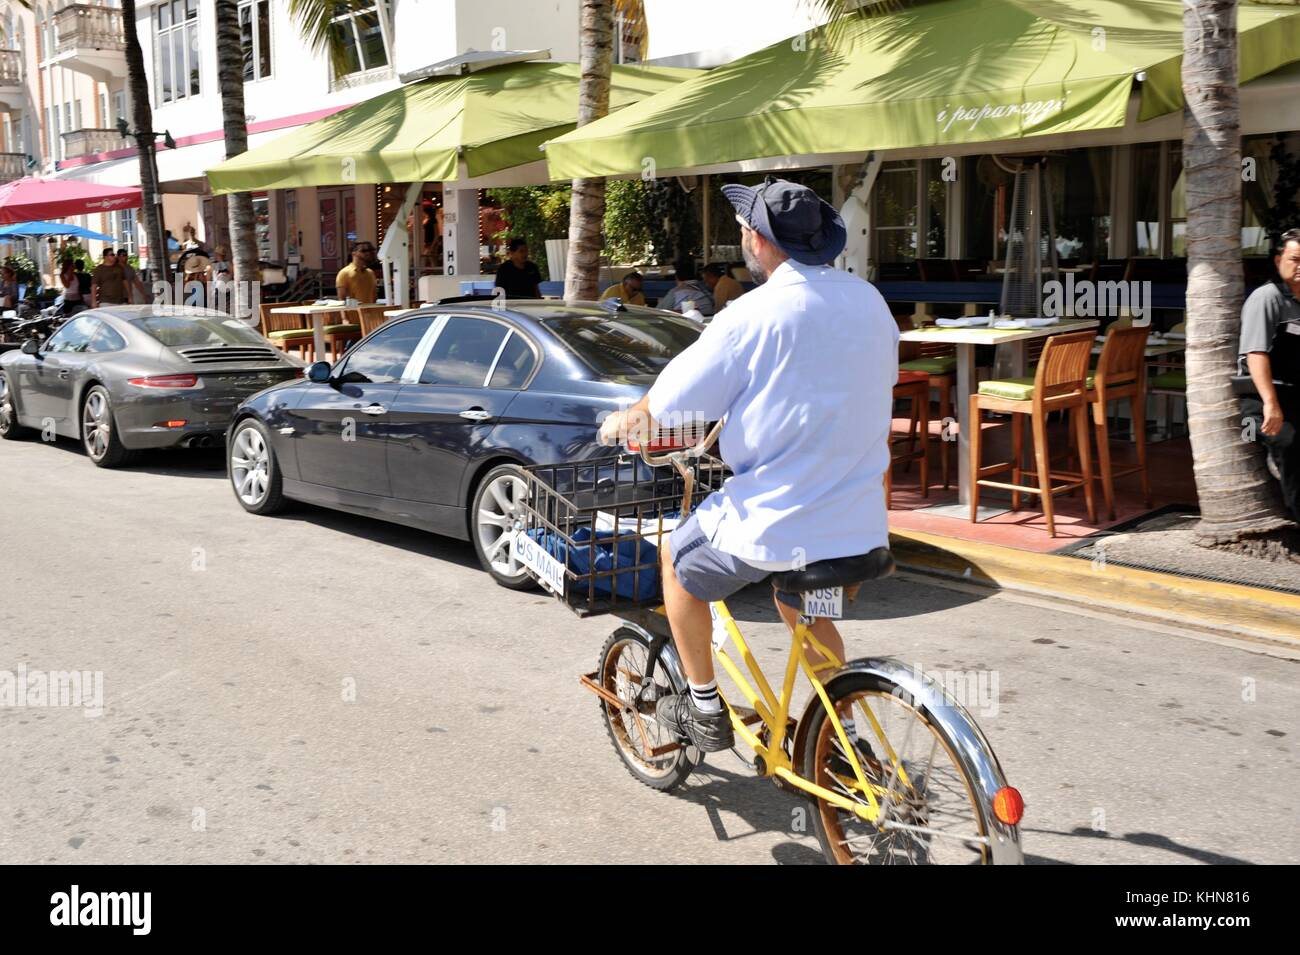 United States Post Office (USPS) postal worker, postman, delivering mail on bicycle in South Beach, Miami, Florida, - Stock Image